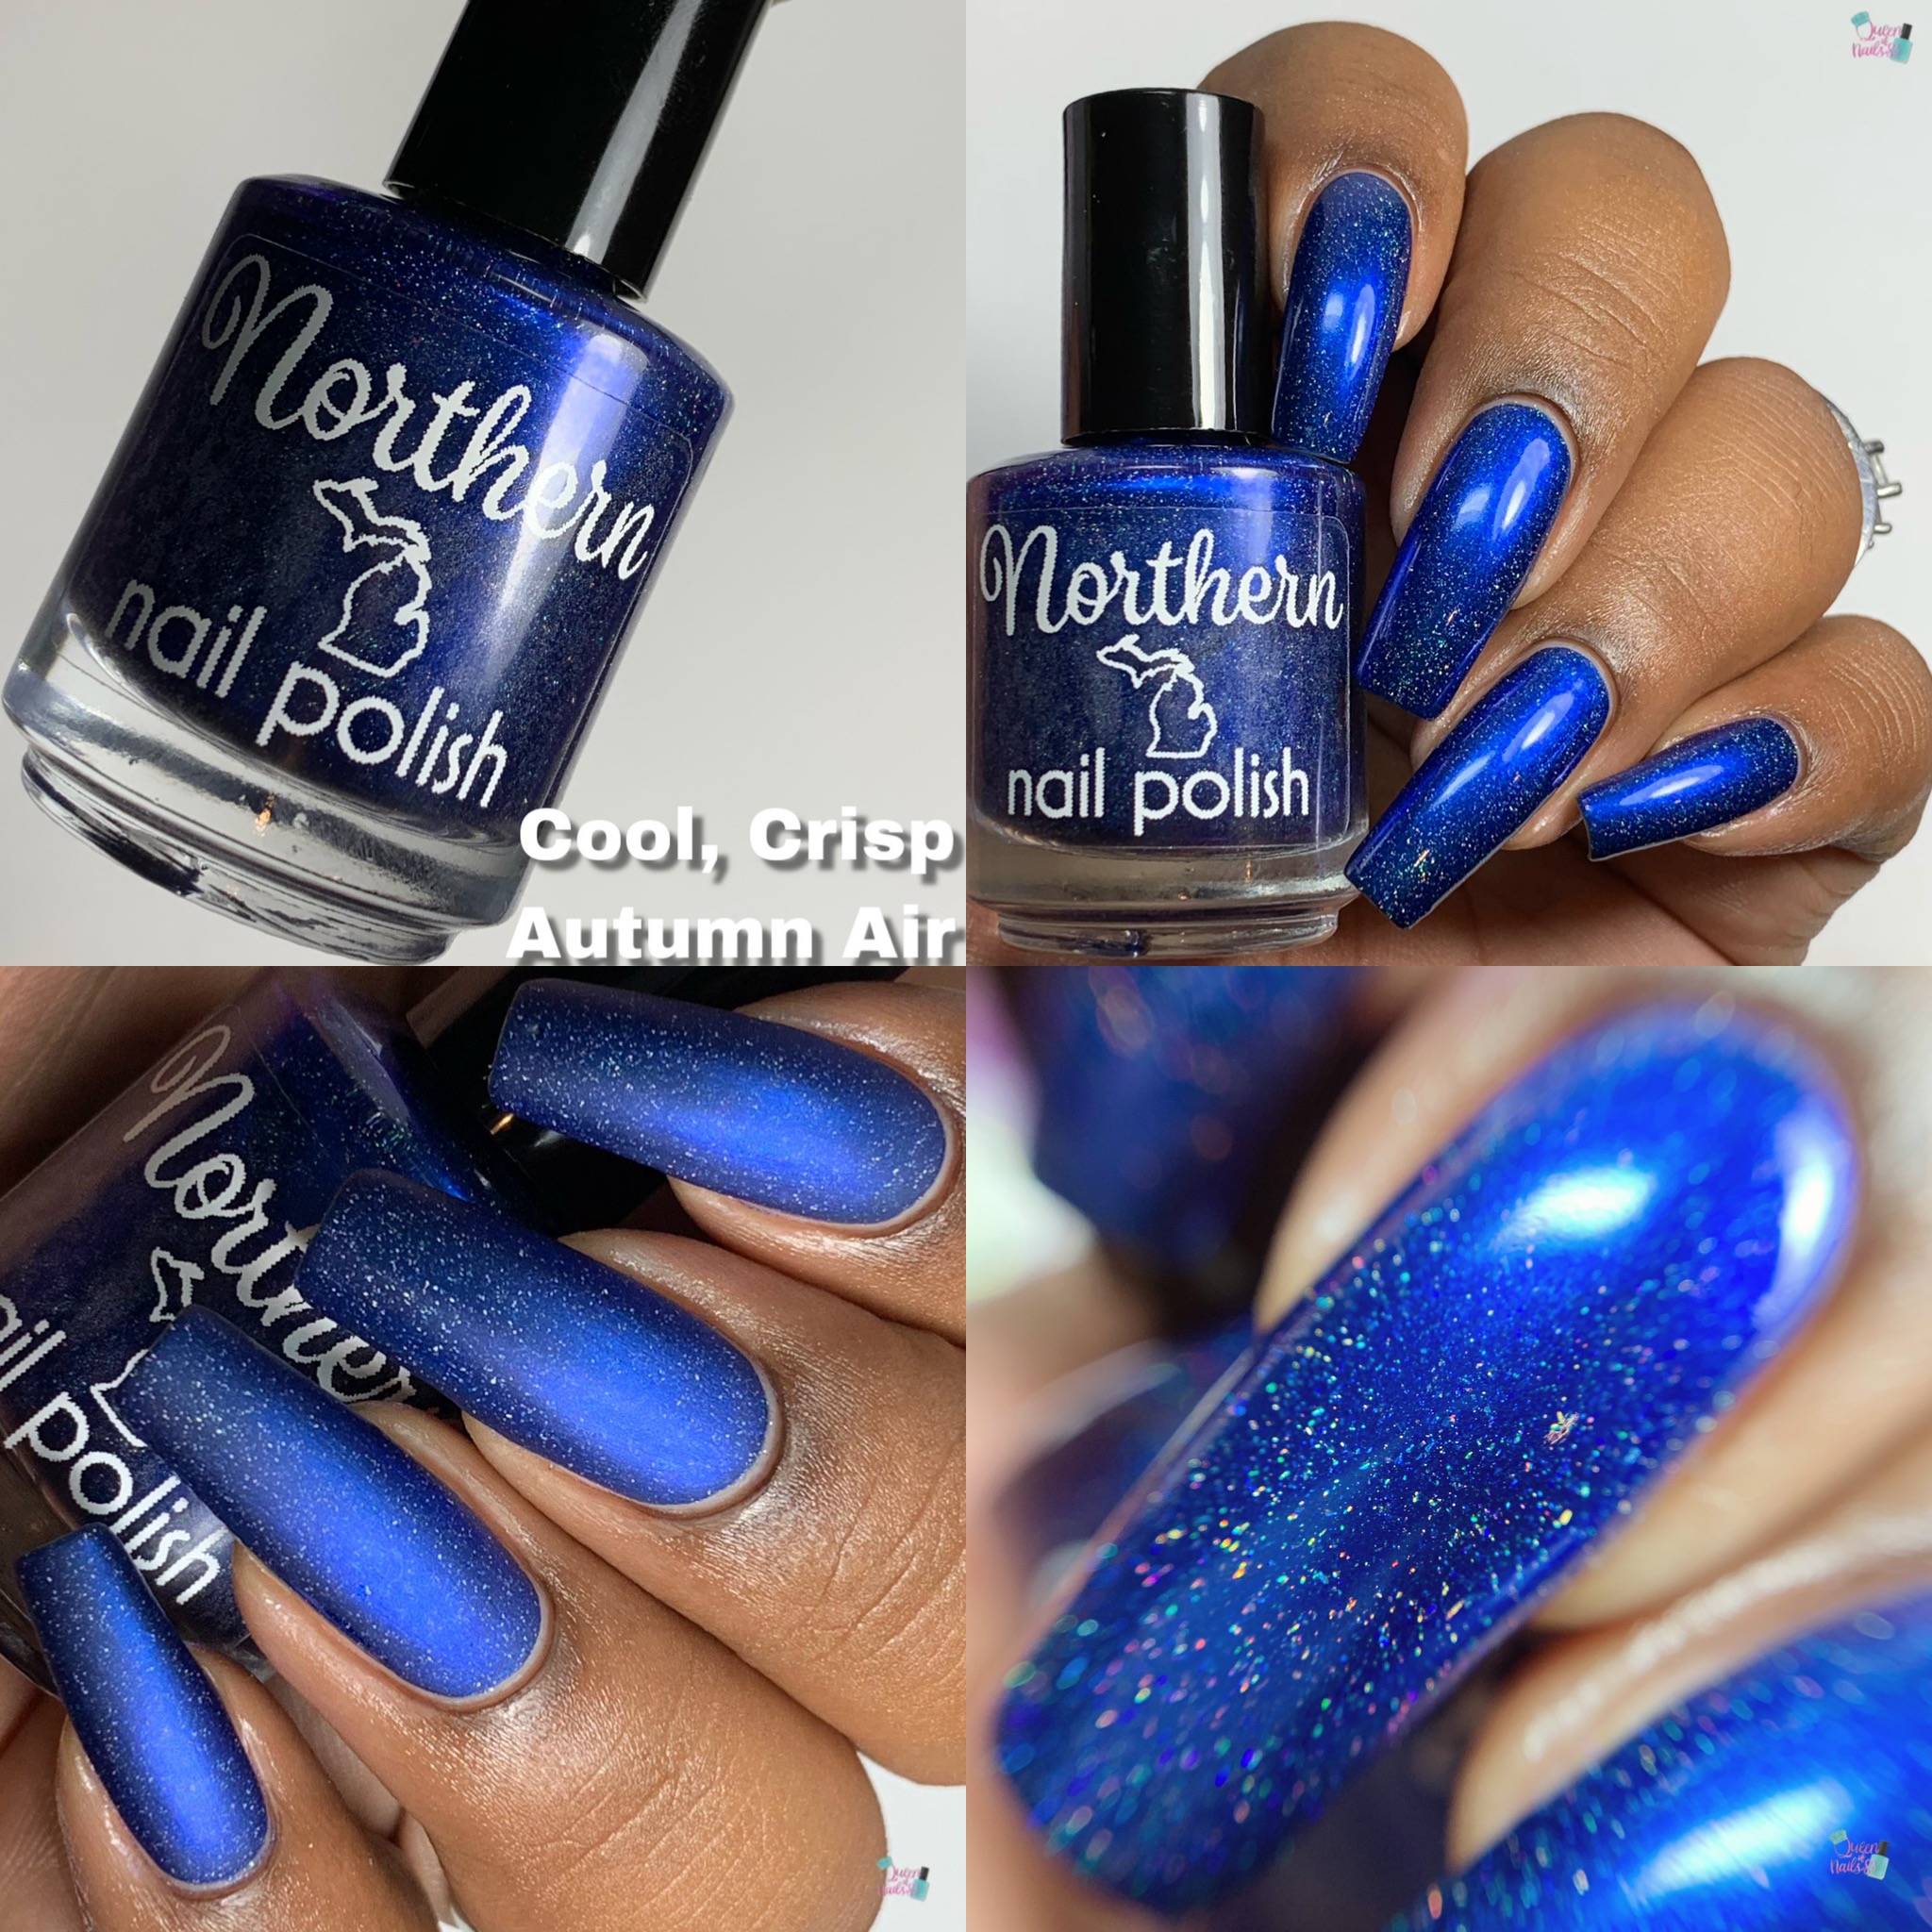 https://queenofnails83.com/2019/08/29/moore-swatches-northern-nail-polish-fall-2019-collection-and-thermal-trio/